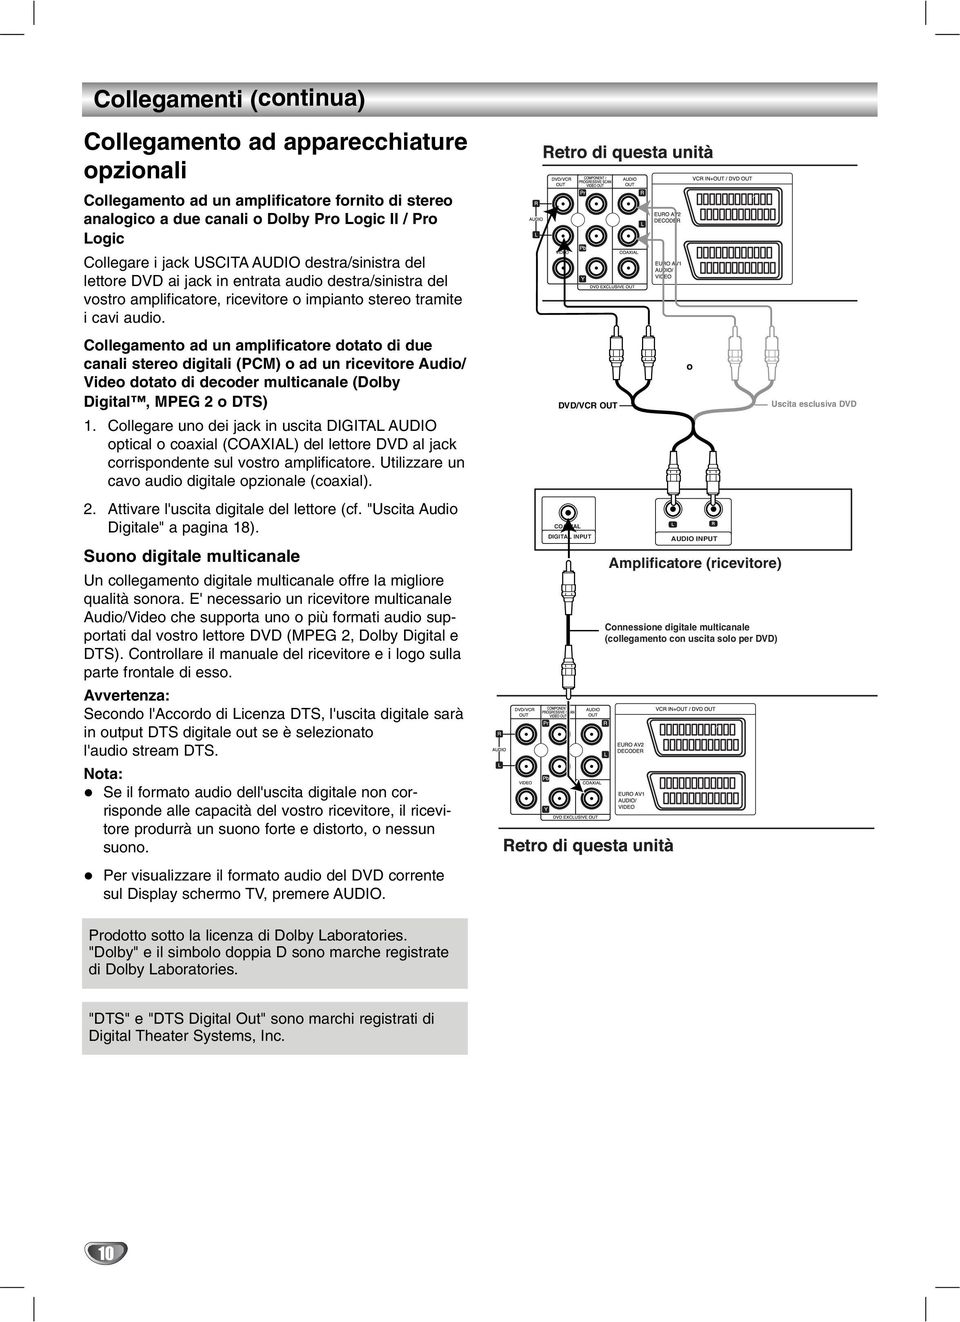 Collegamento ad un amplificatore dotato di due canali stereo digitali (PCM) o ad un ricevitore Audio/ Video dotato di decoder multicanale (Dolby Digital, MPEG 2 o DTS) 1.